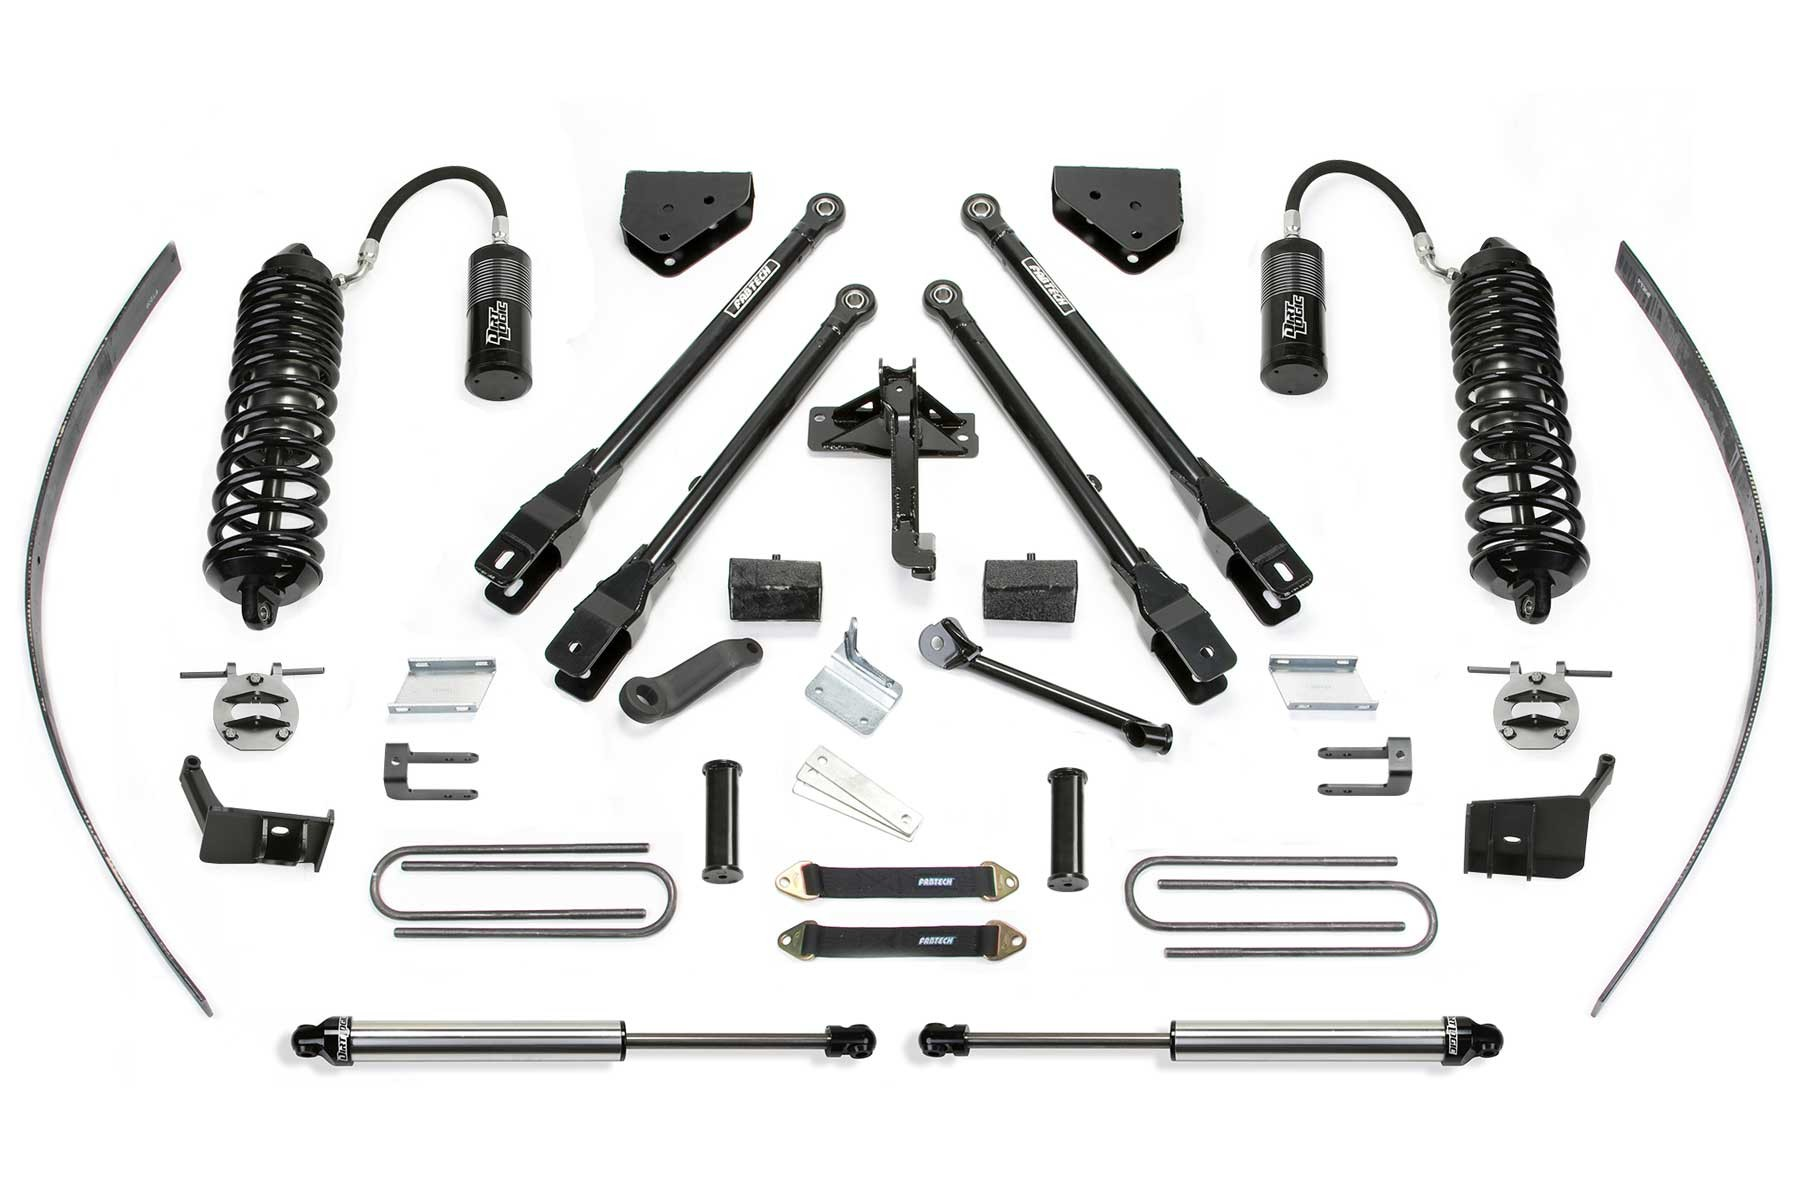 FABTECH 2011-16 FORD F250 4WD- 8″ 4 LINK SYSTEM W/ FRONT DIRT LOGIC 4.0 RESI COILOVERS & REAR DIRT LOGIC 2.25 SHOCKS